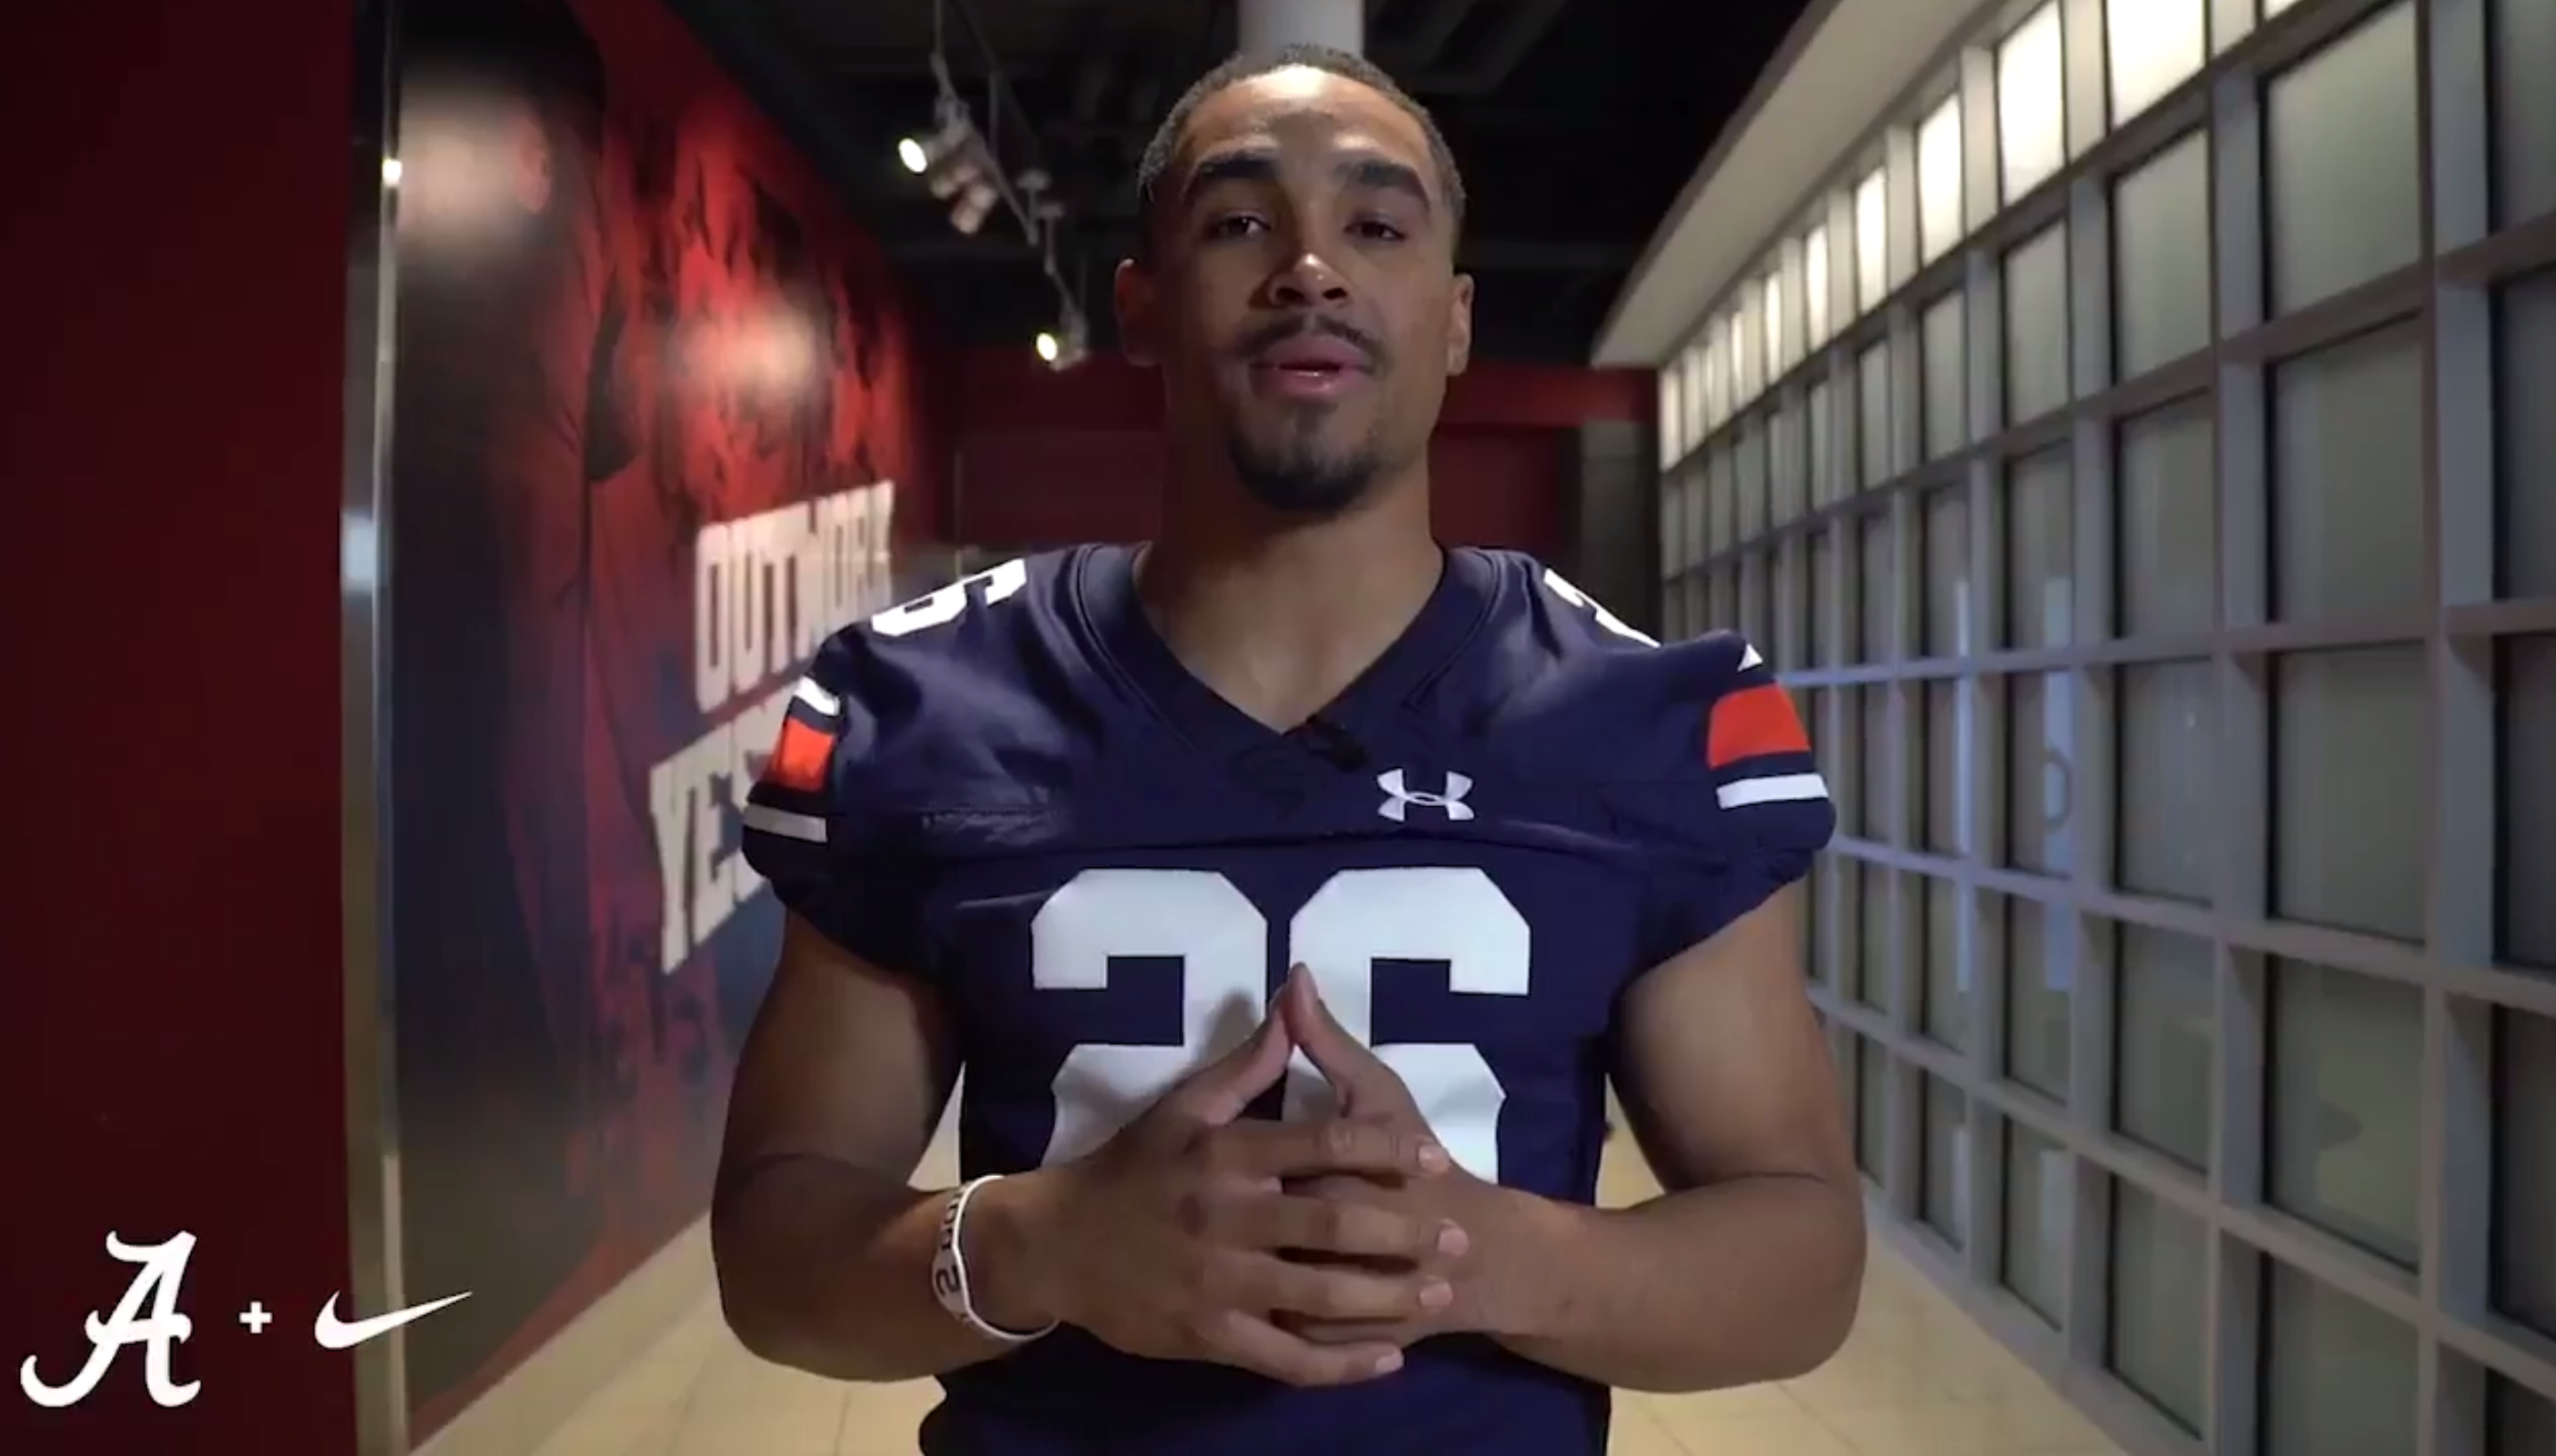 Alabama QB Jalen Hurts pays off bet, wears Auburn jersey